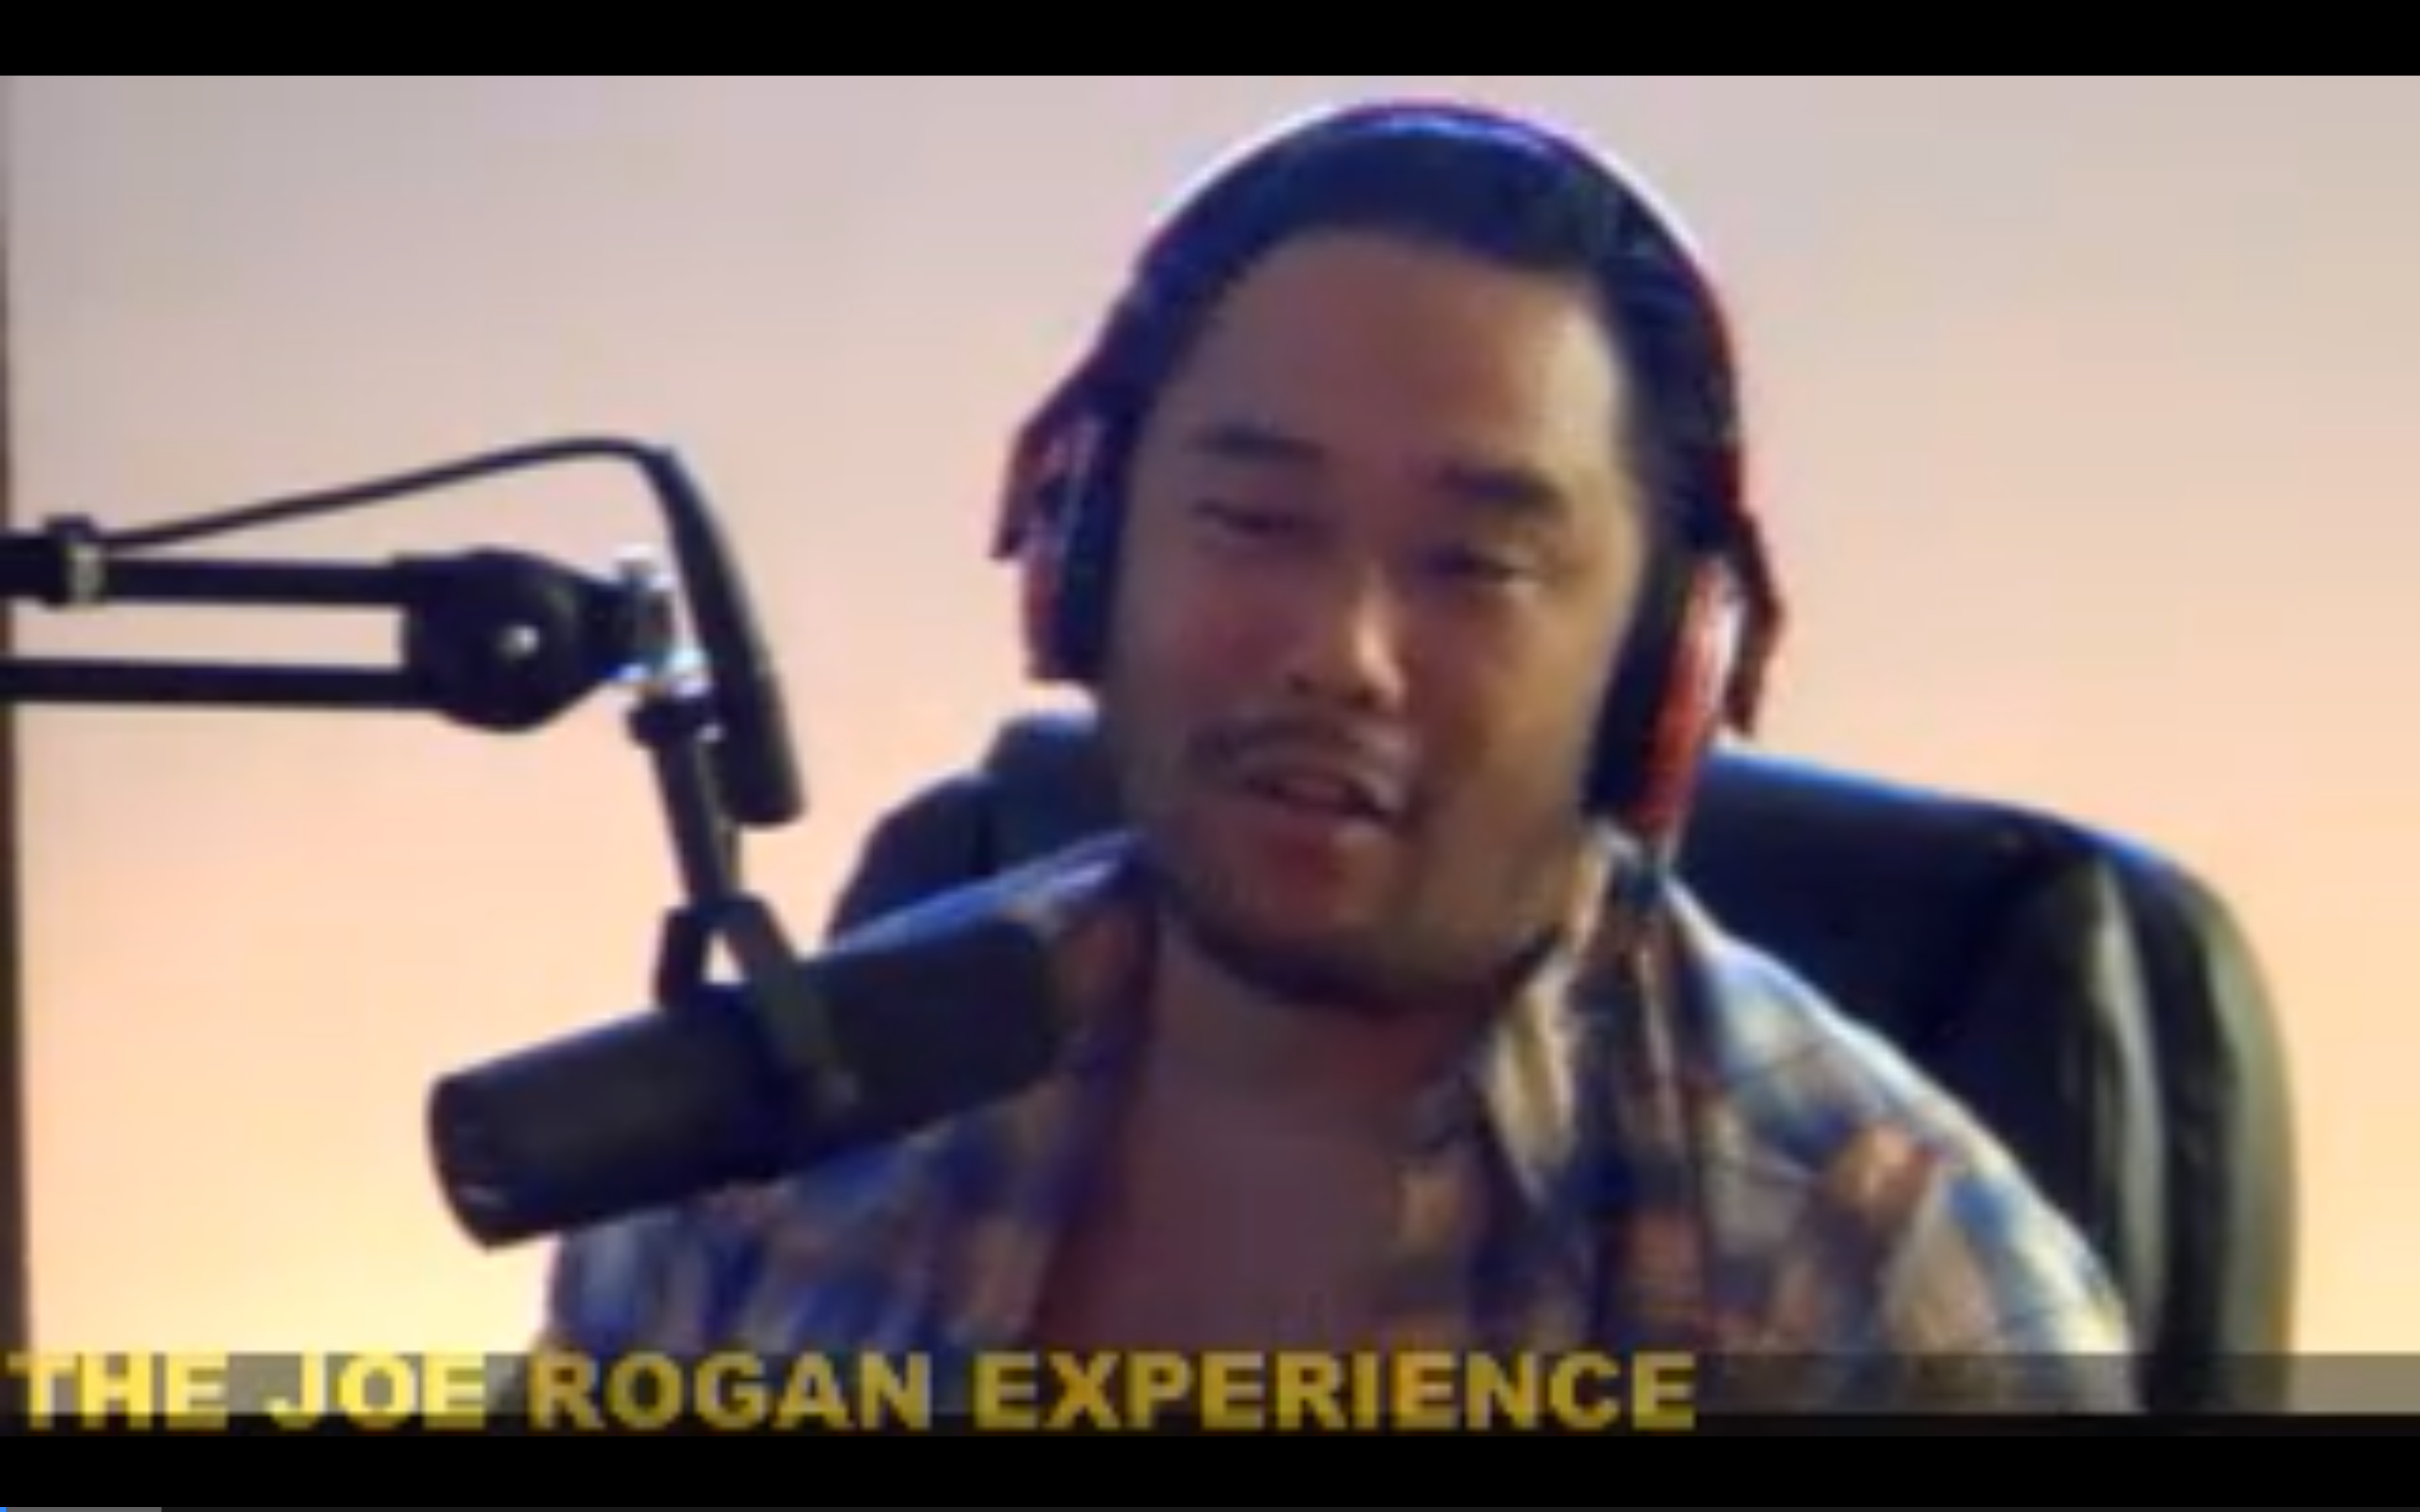 The Joe Rogan Experience #317 - David Choe, Yoshi Obayashi